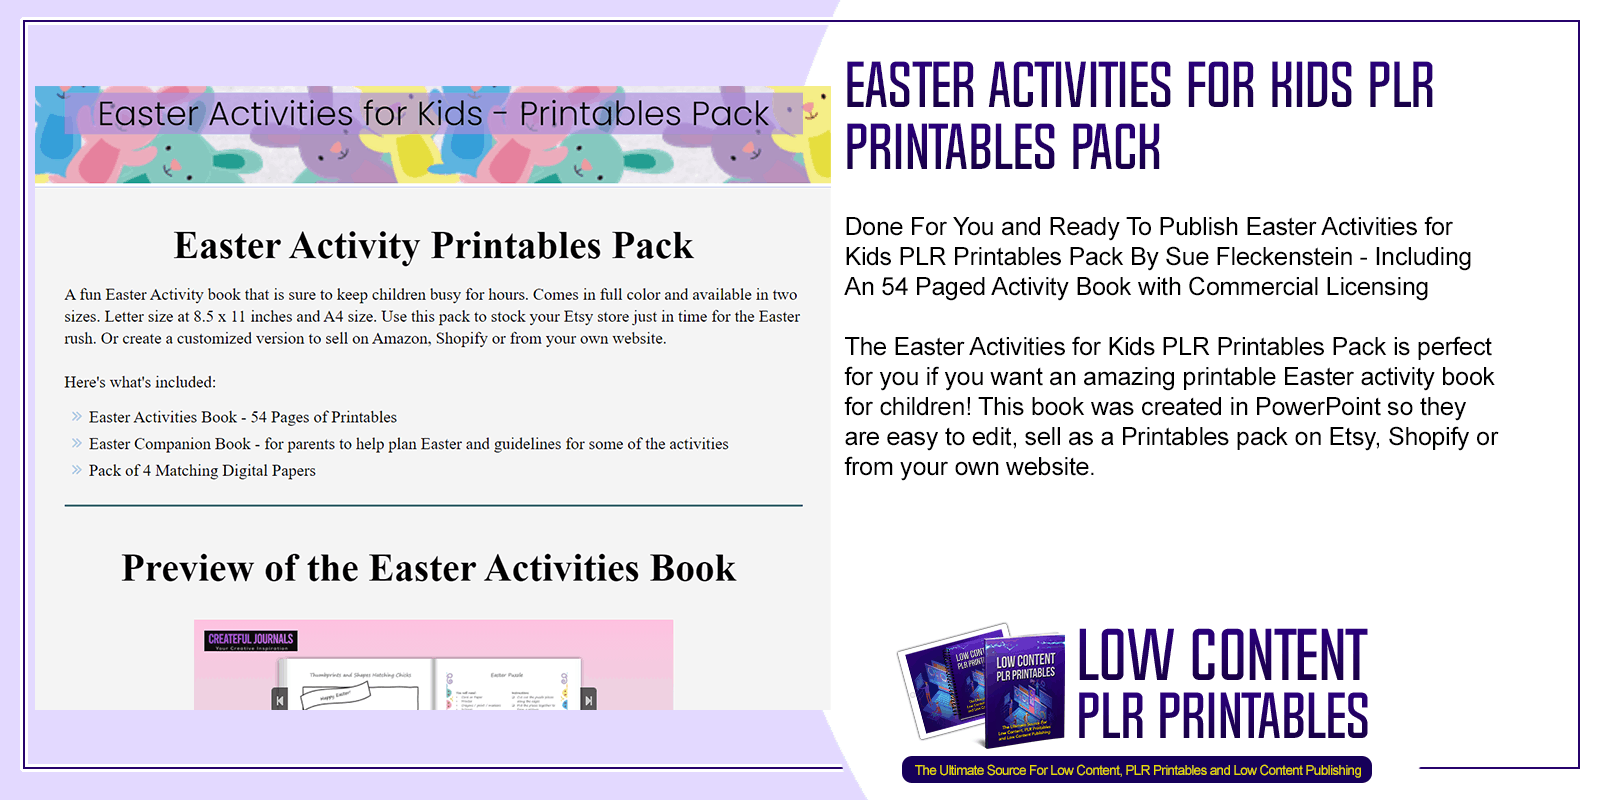 Easter Activities for Kids PLR Printables Pack